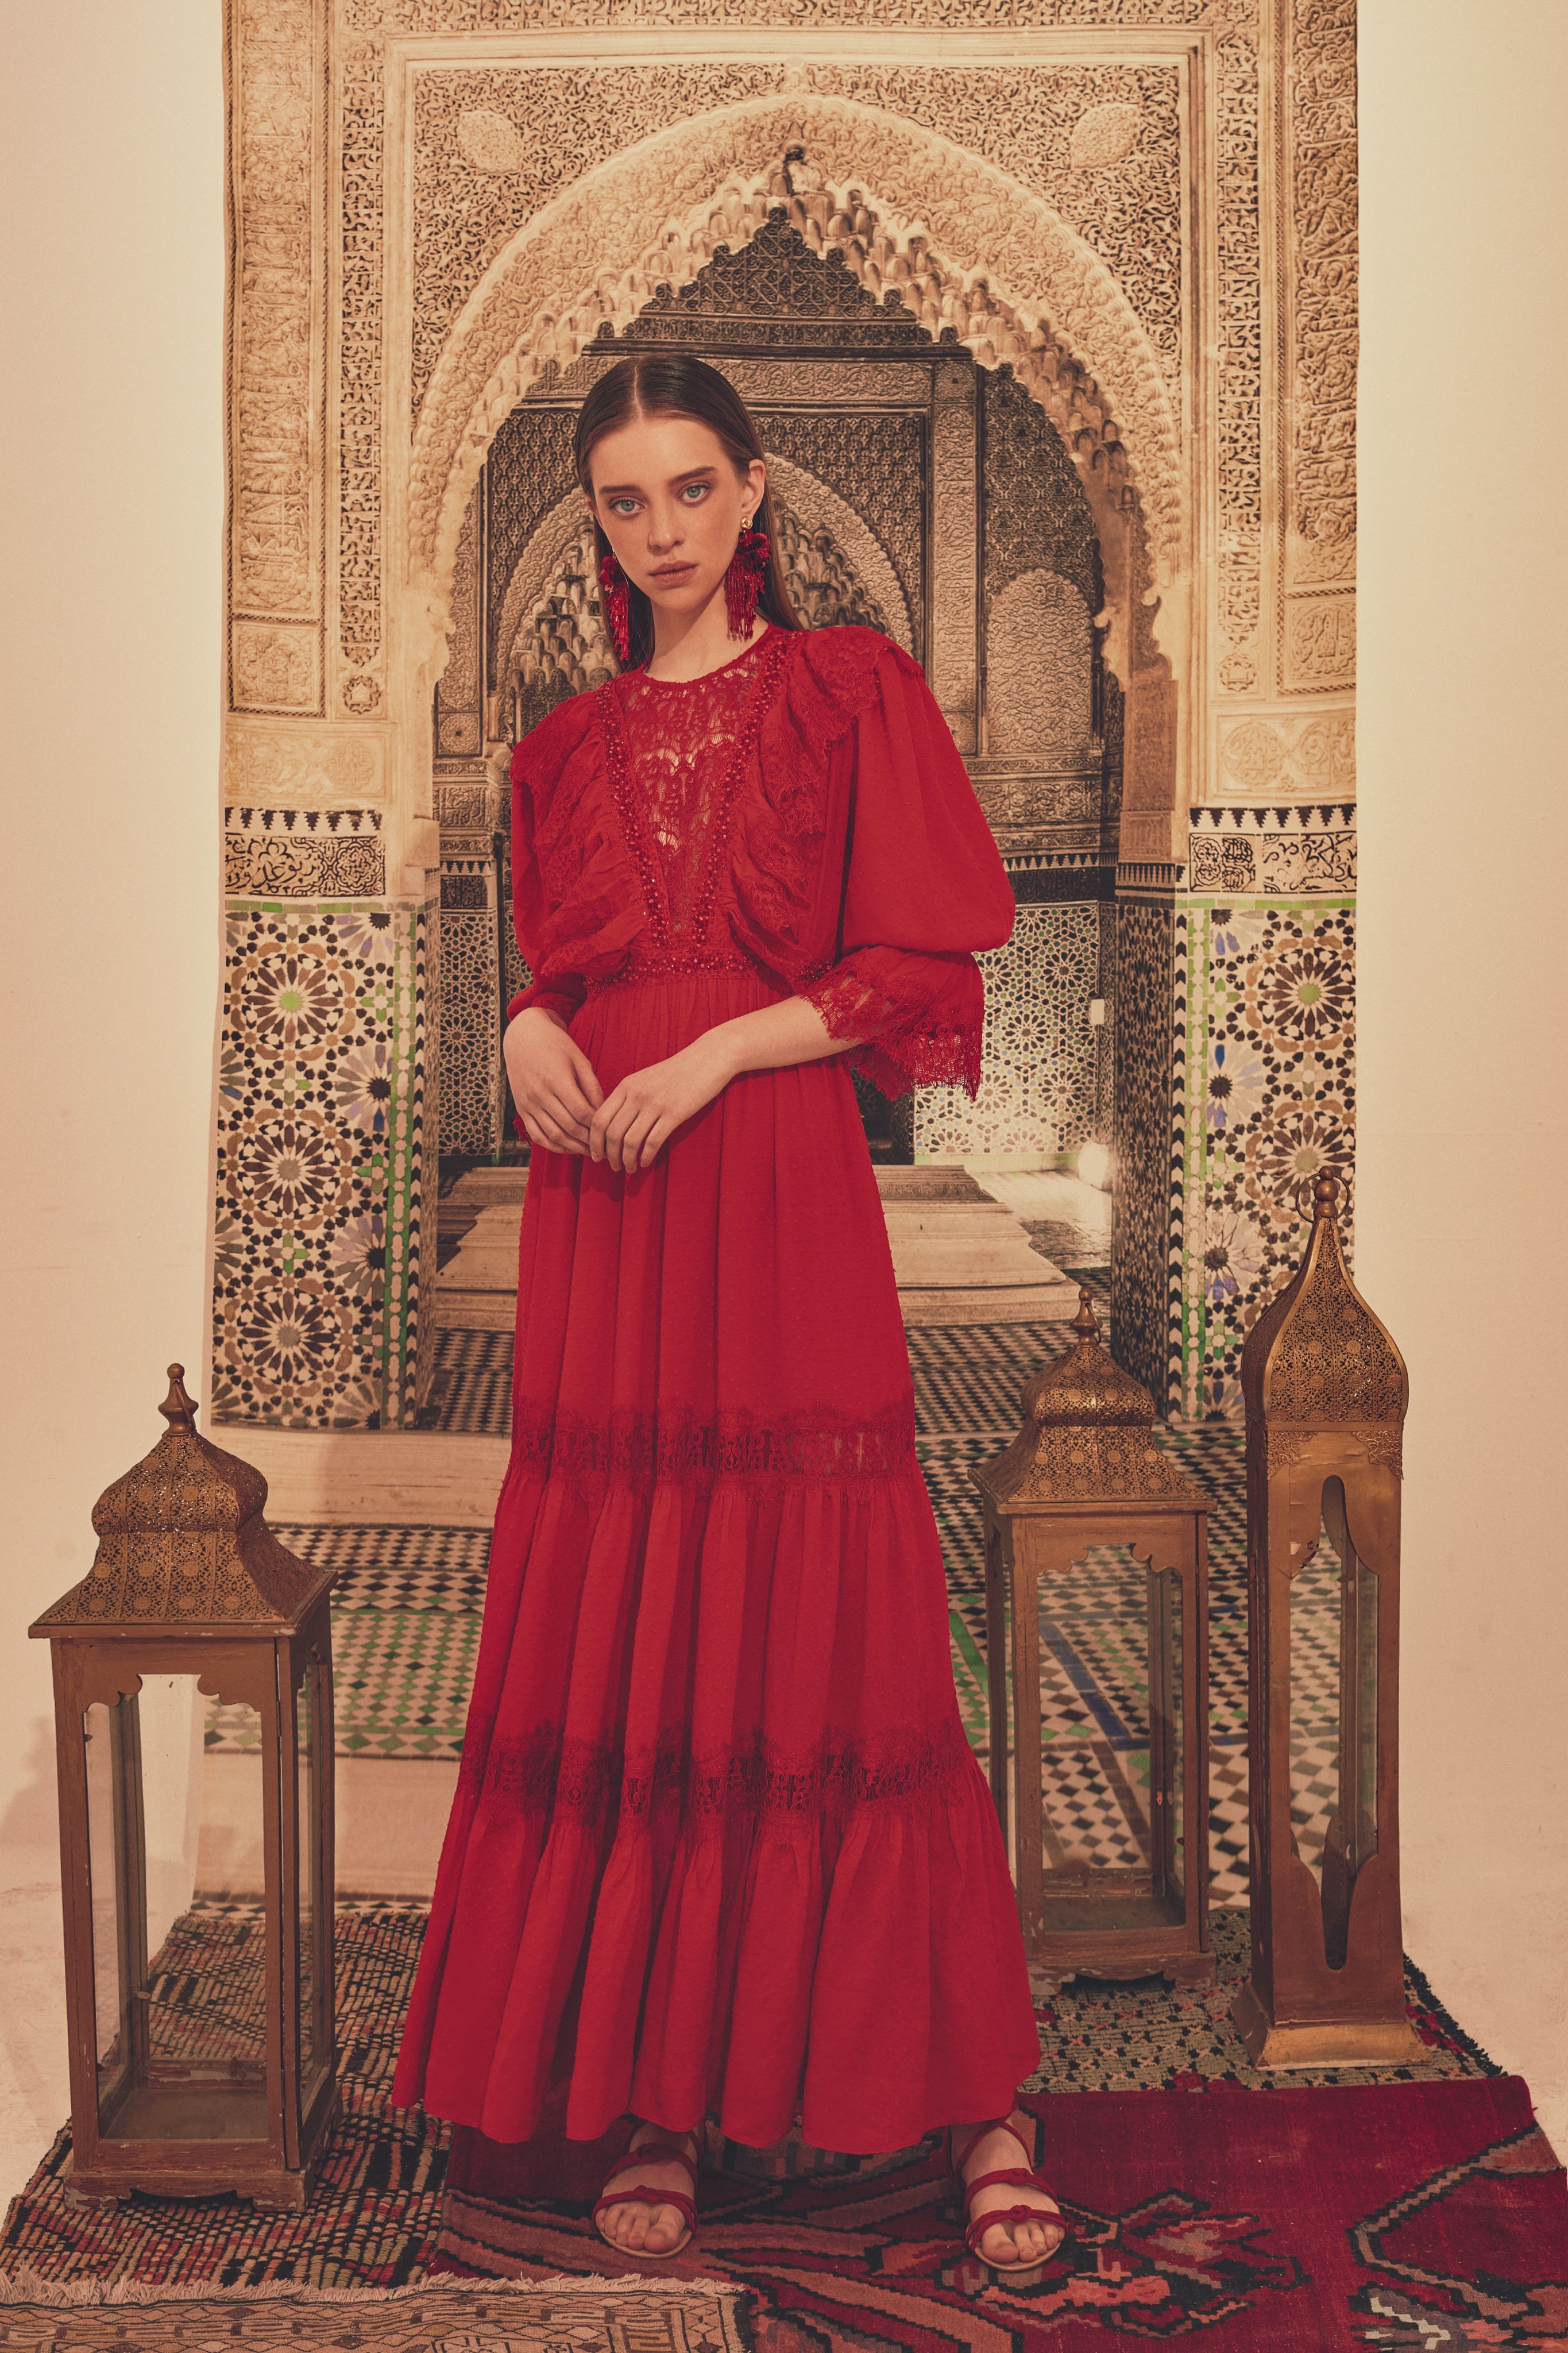 Red Cupro Maxi Dress With Lace Details By Erkan Demiroglu